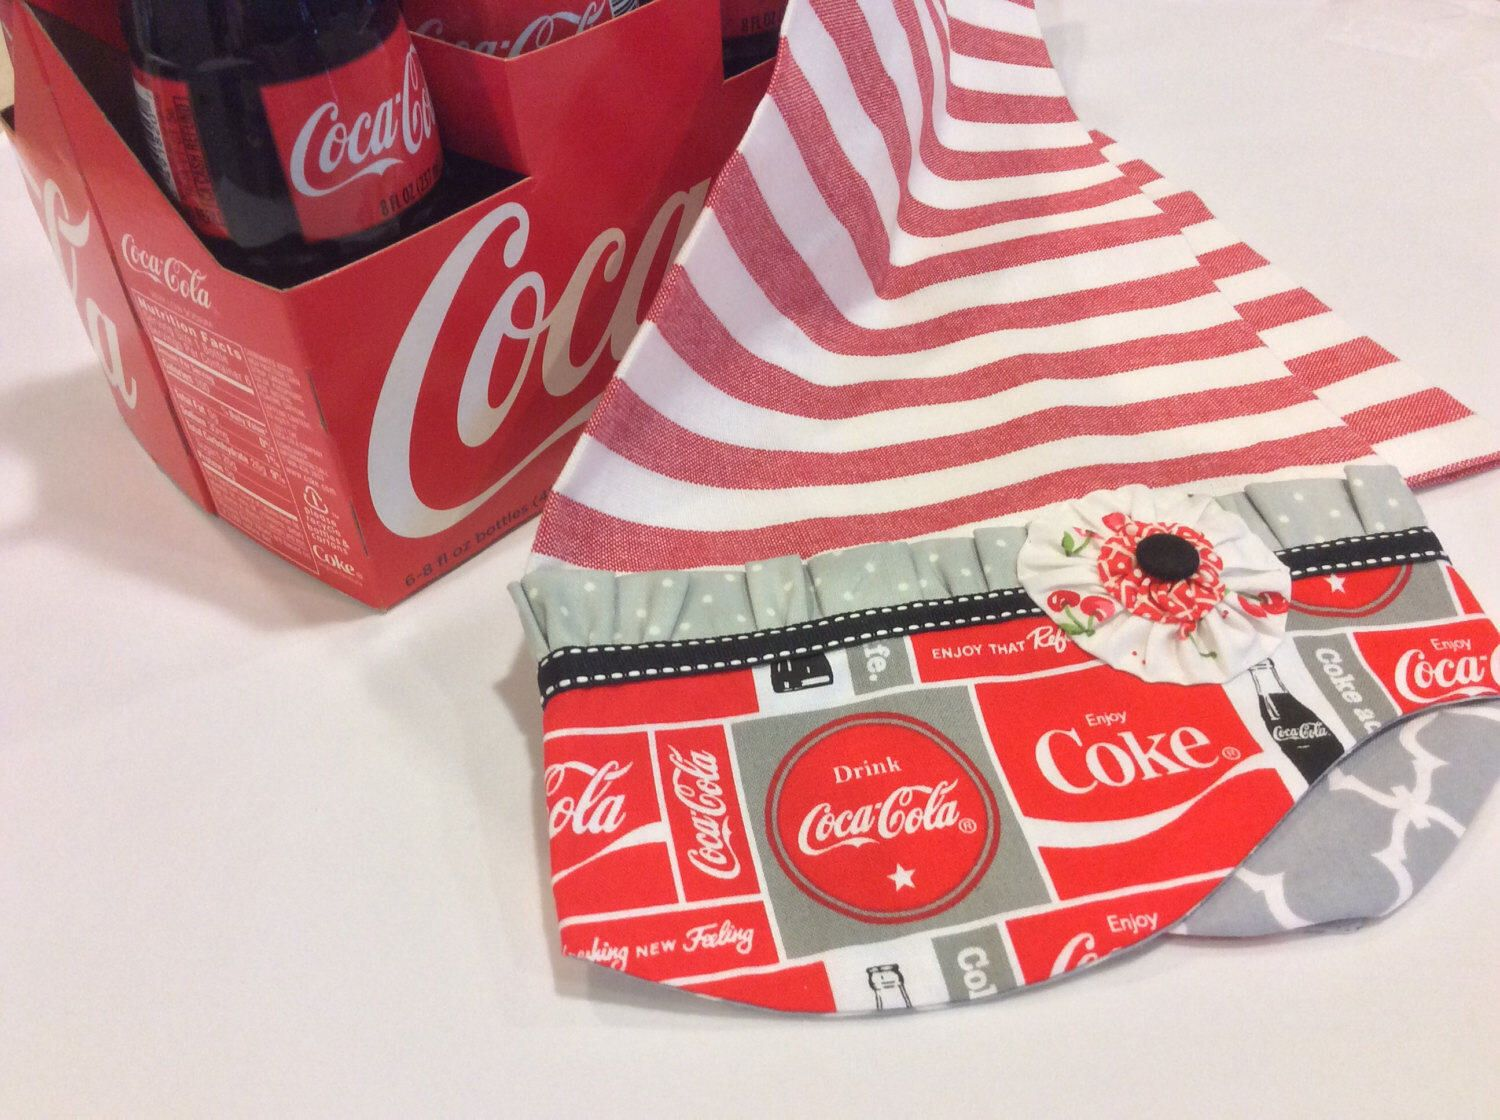 Coke Dish Towels/Coca Cola/Coke/Coke Kitchen/Coke Towels/Dishtowels